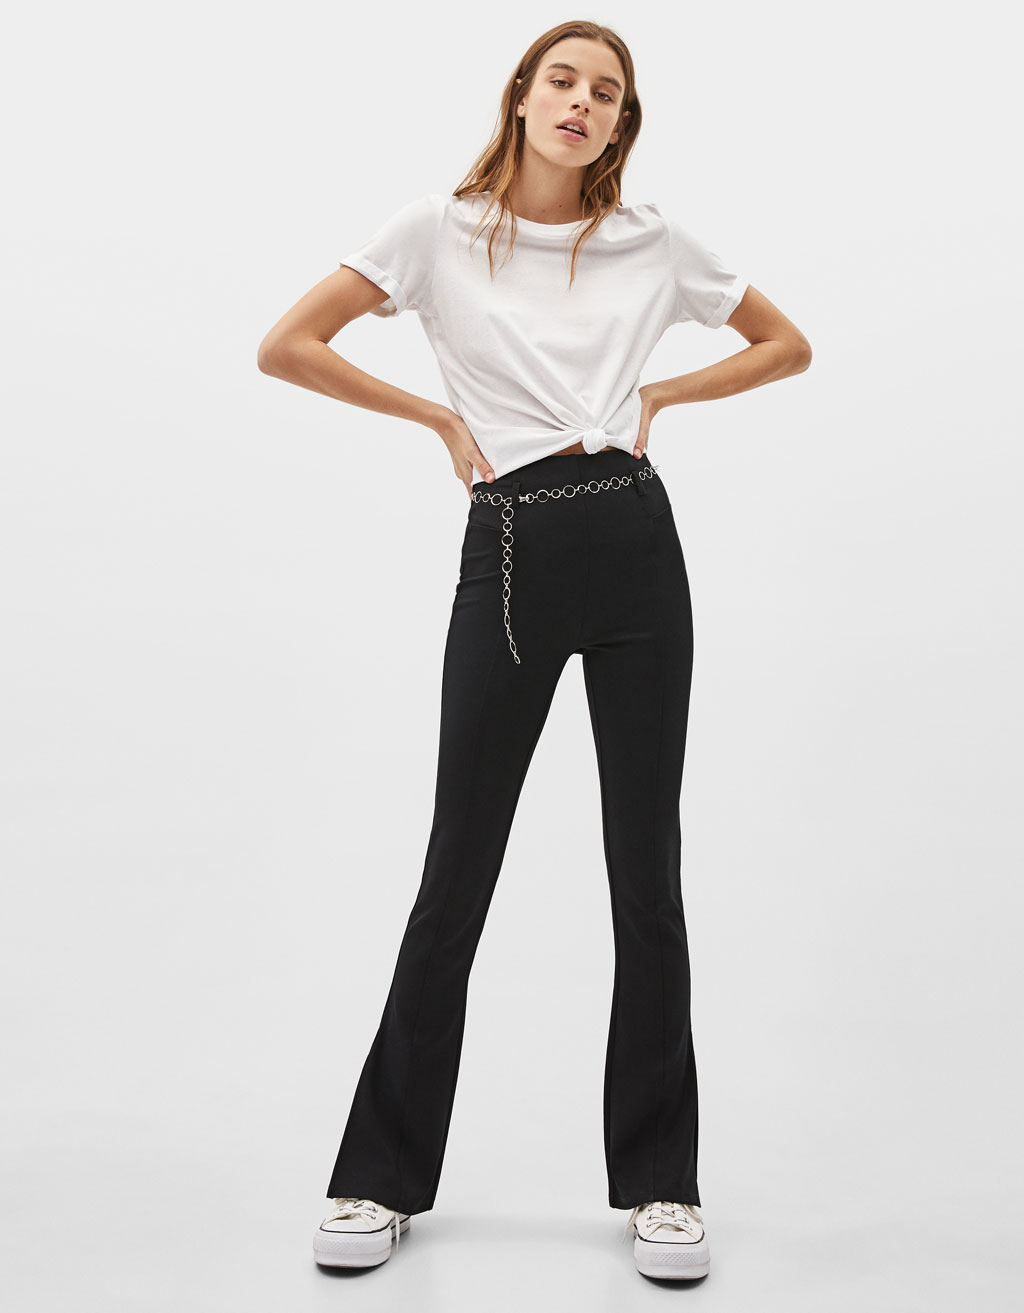 Flared pants with chain